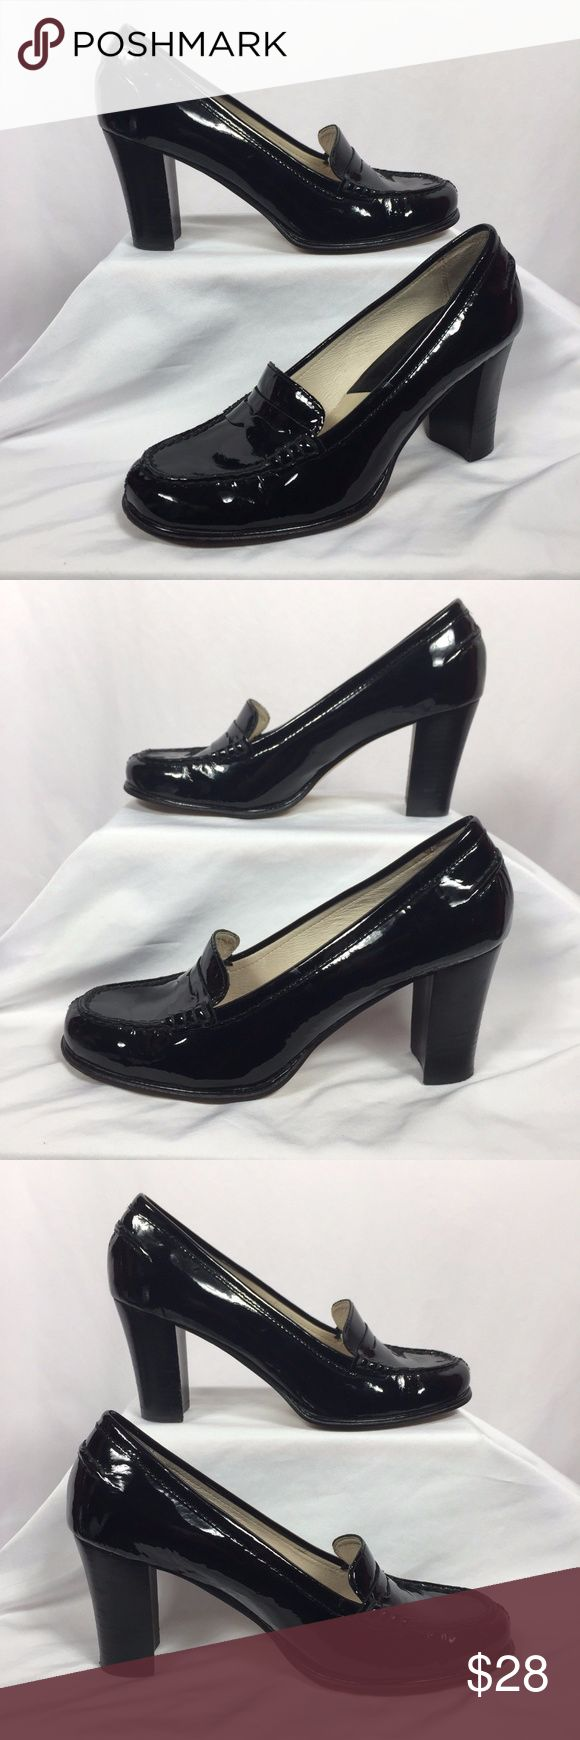 """Kors Black Patent Leather High Heel Loafers 7.5 MICHAEL Michael Kors Bayville Black Patent Leather High Heel Penny Loafers. Great preowned condition. Minor wear to the soles and heel. Classic penny slot on vamp. Rounded toe with decorative stitching. 3"""" block heel. Labeled a 7.5 M. Feel free to contact me with any questions you may have. Please take a look at my other unique listings too. Thanks! KORS Michael Kors Shoes Heels"""